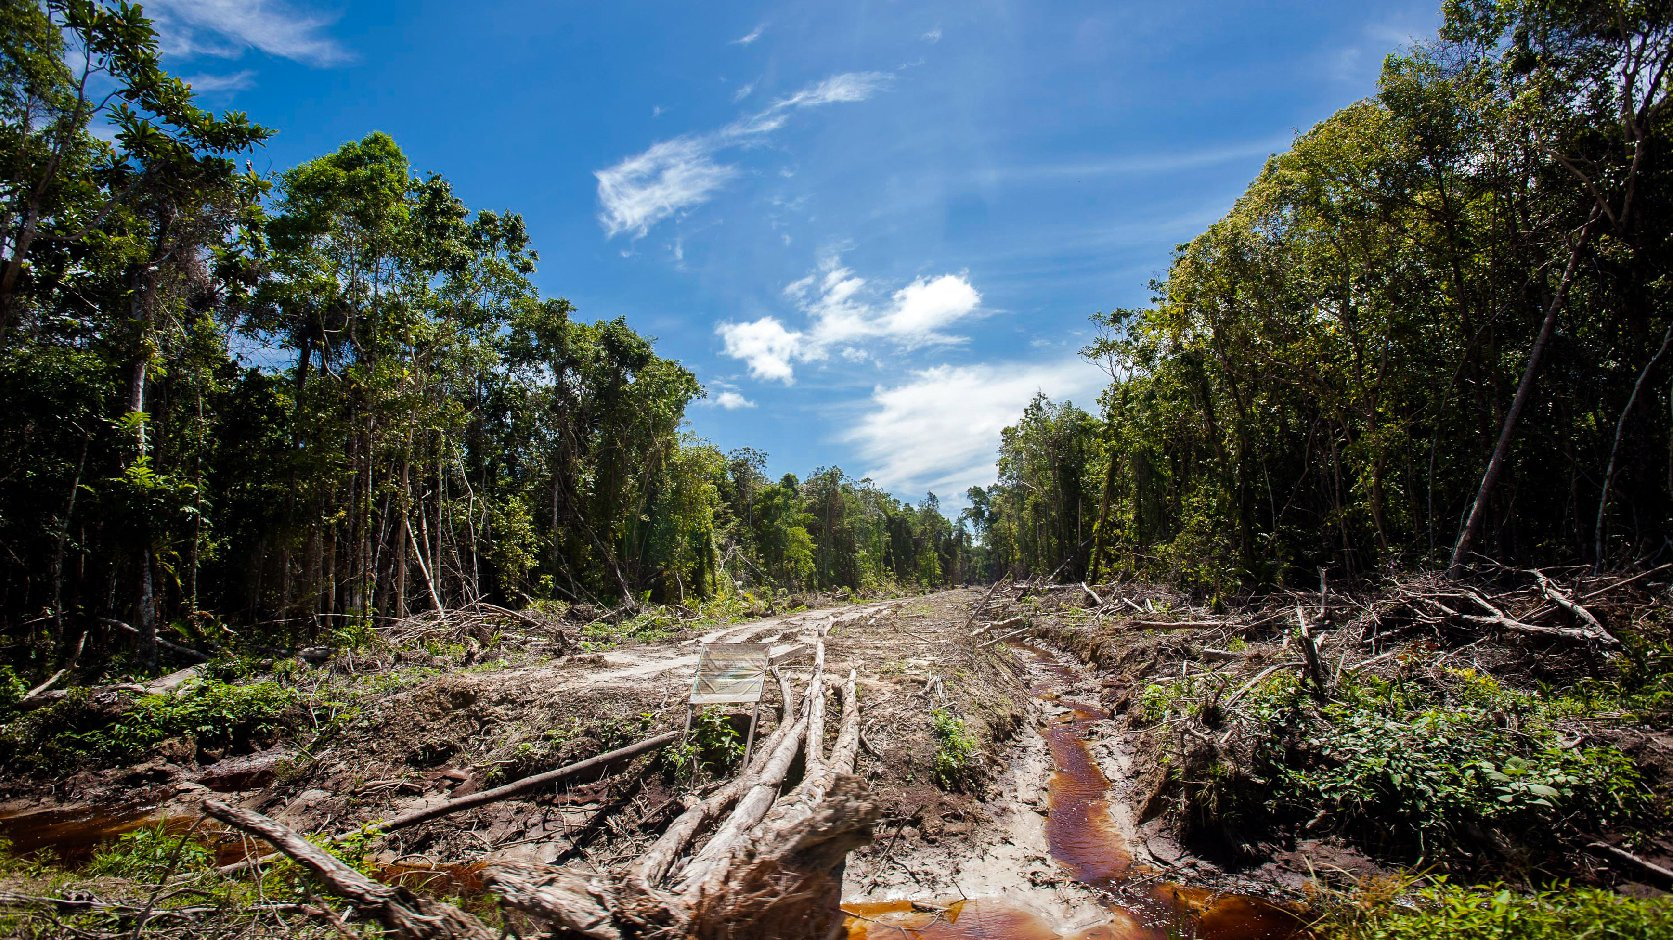 An access road is constructed in a peatland forest being cleared for a palm oil plantation on Indonesia's Sumatra island in 2013. Photo: Chaideer Mahyuddin/AFP/Getty Images